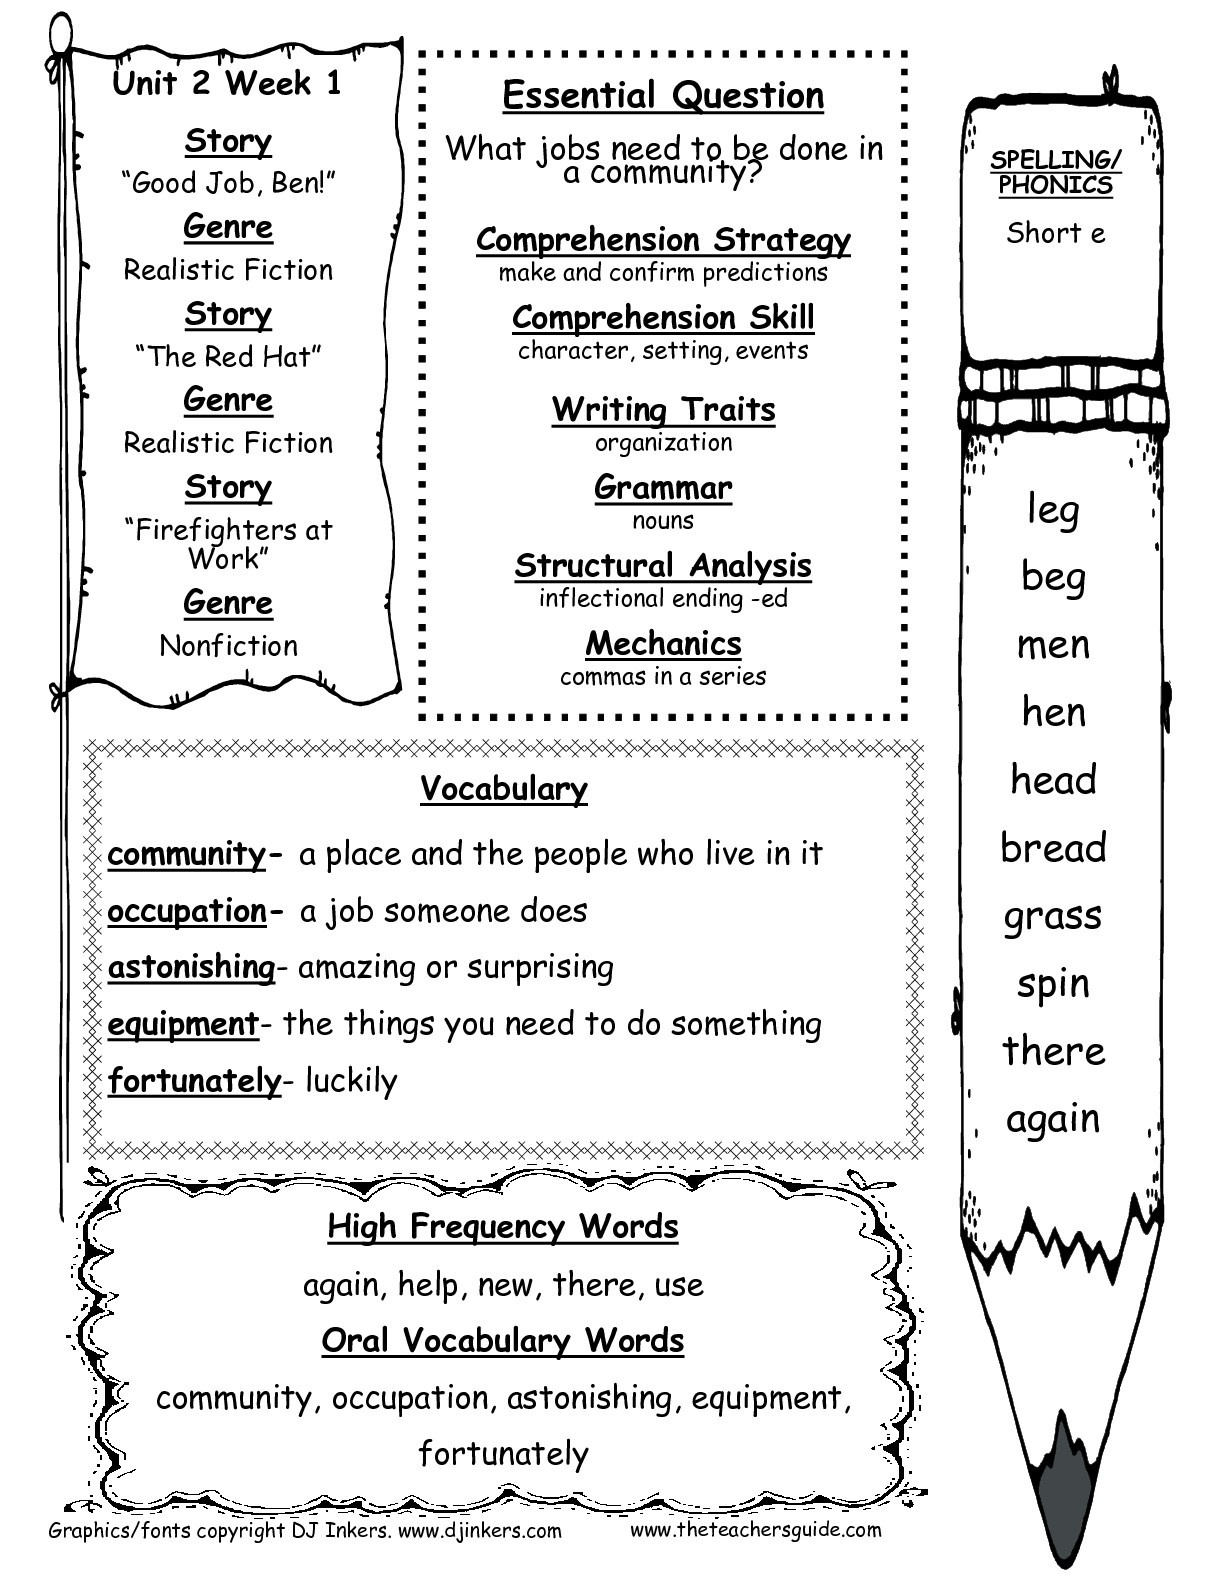 Mcgraw-Hill Wonders First Grade Resources And Printouts - Free Printable Worksheets For 1St Grade